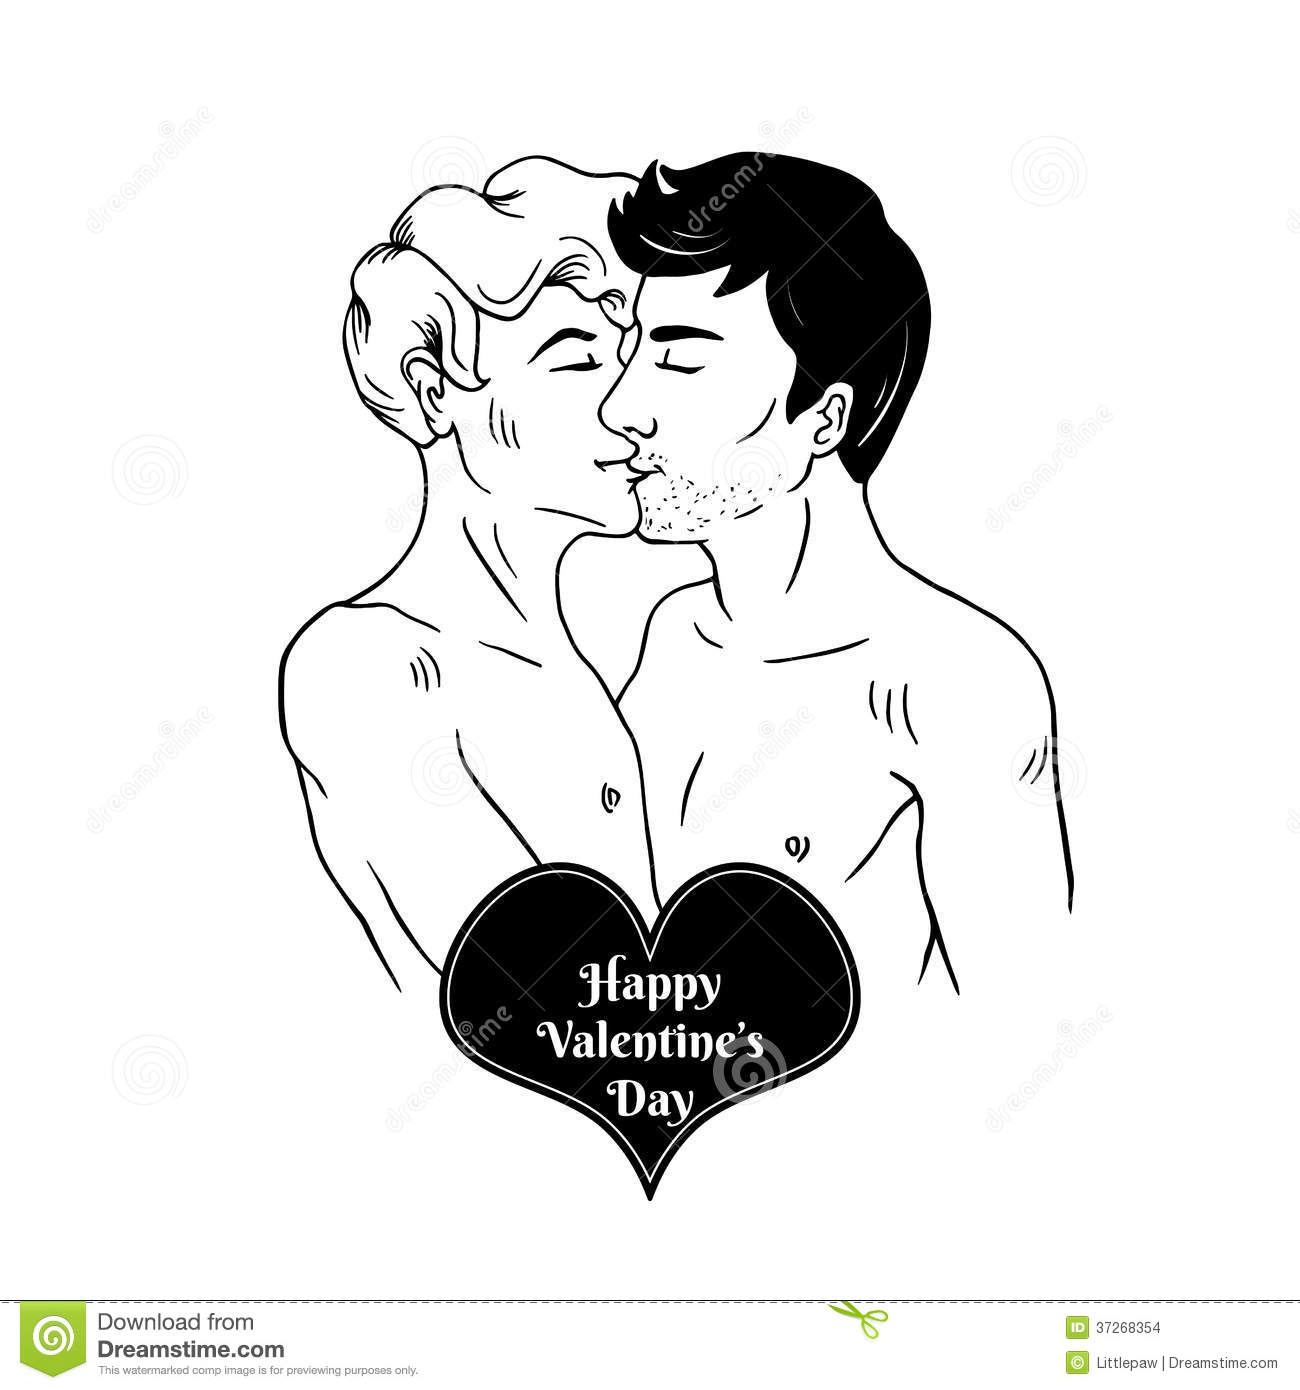 from Maximiliano gay valentine day e card